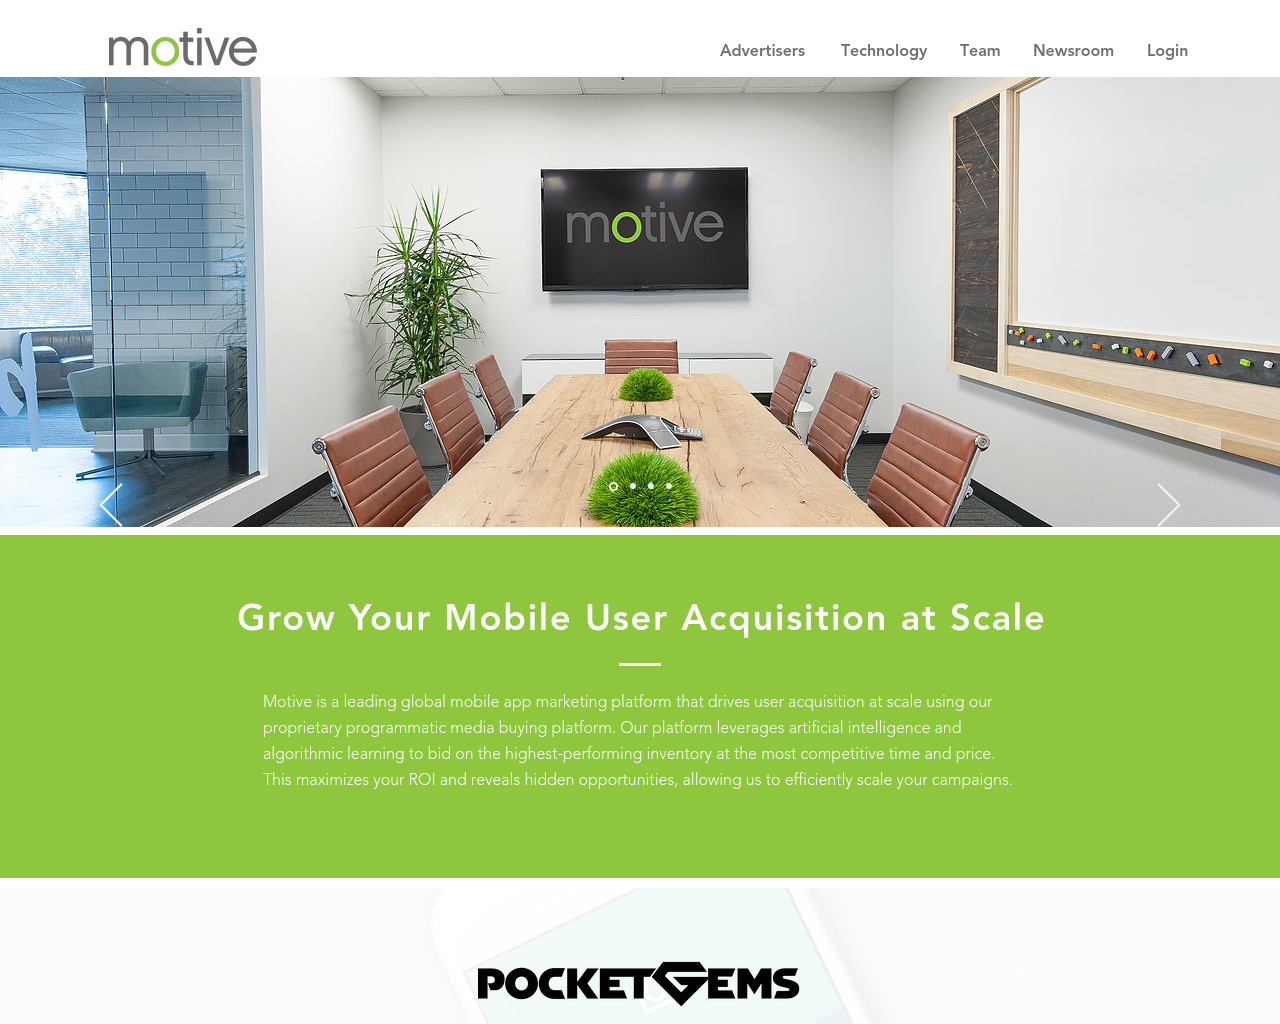 Motive-Interactive-Advertising-Reviews-Pricing